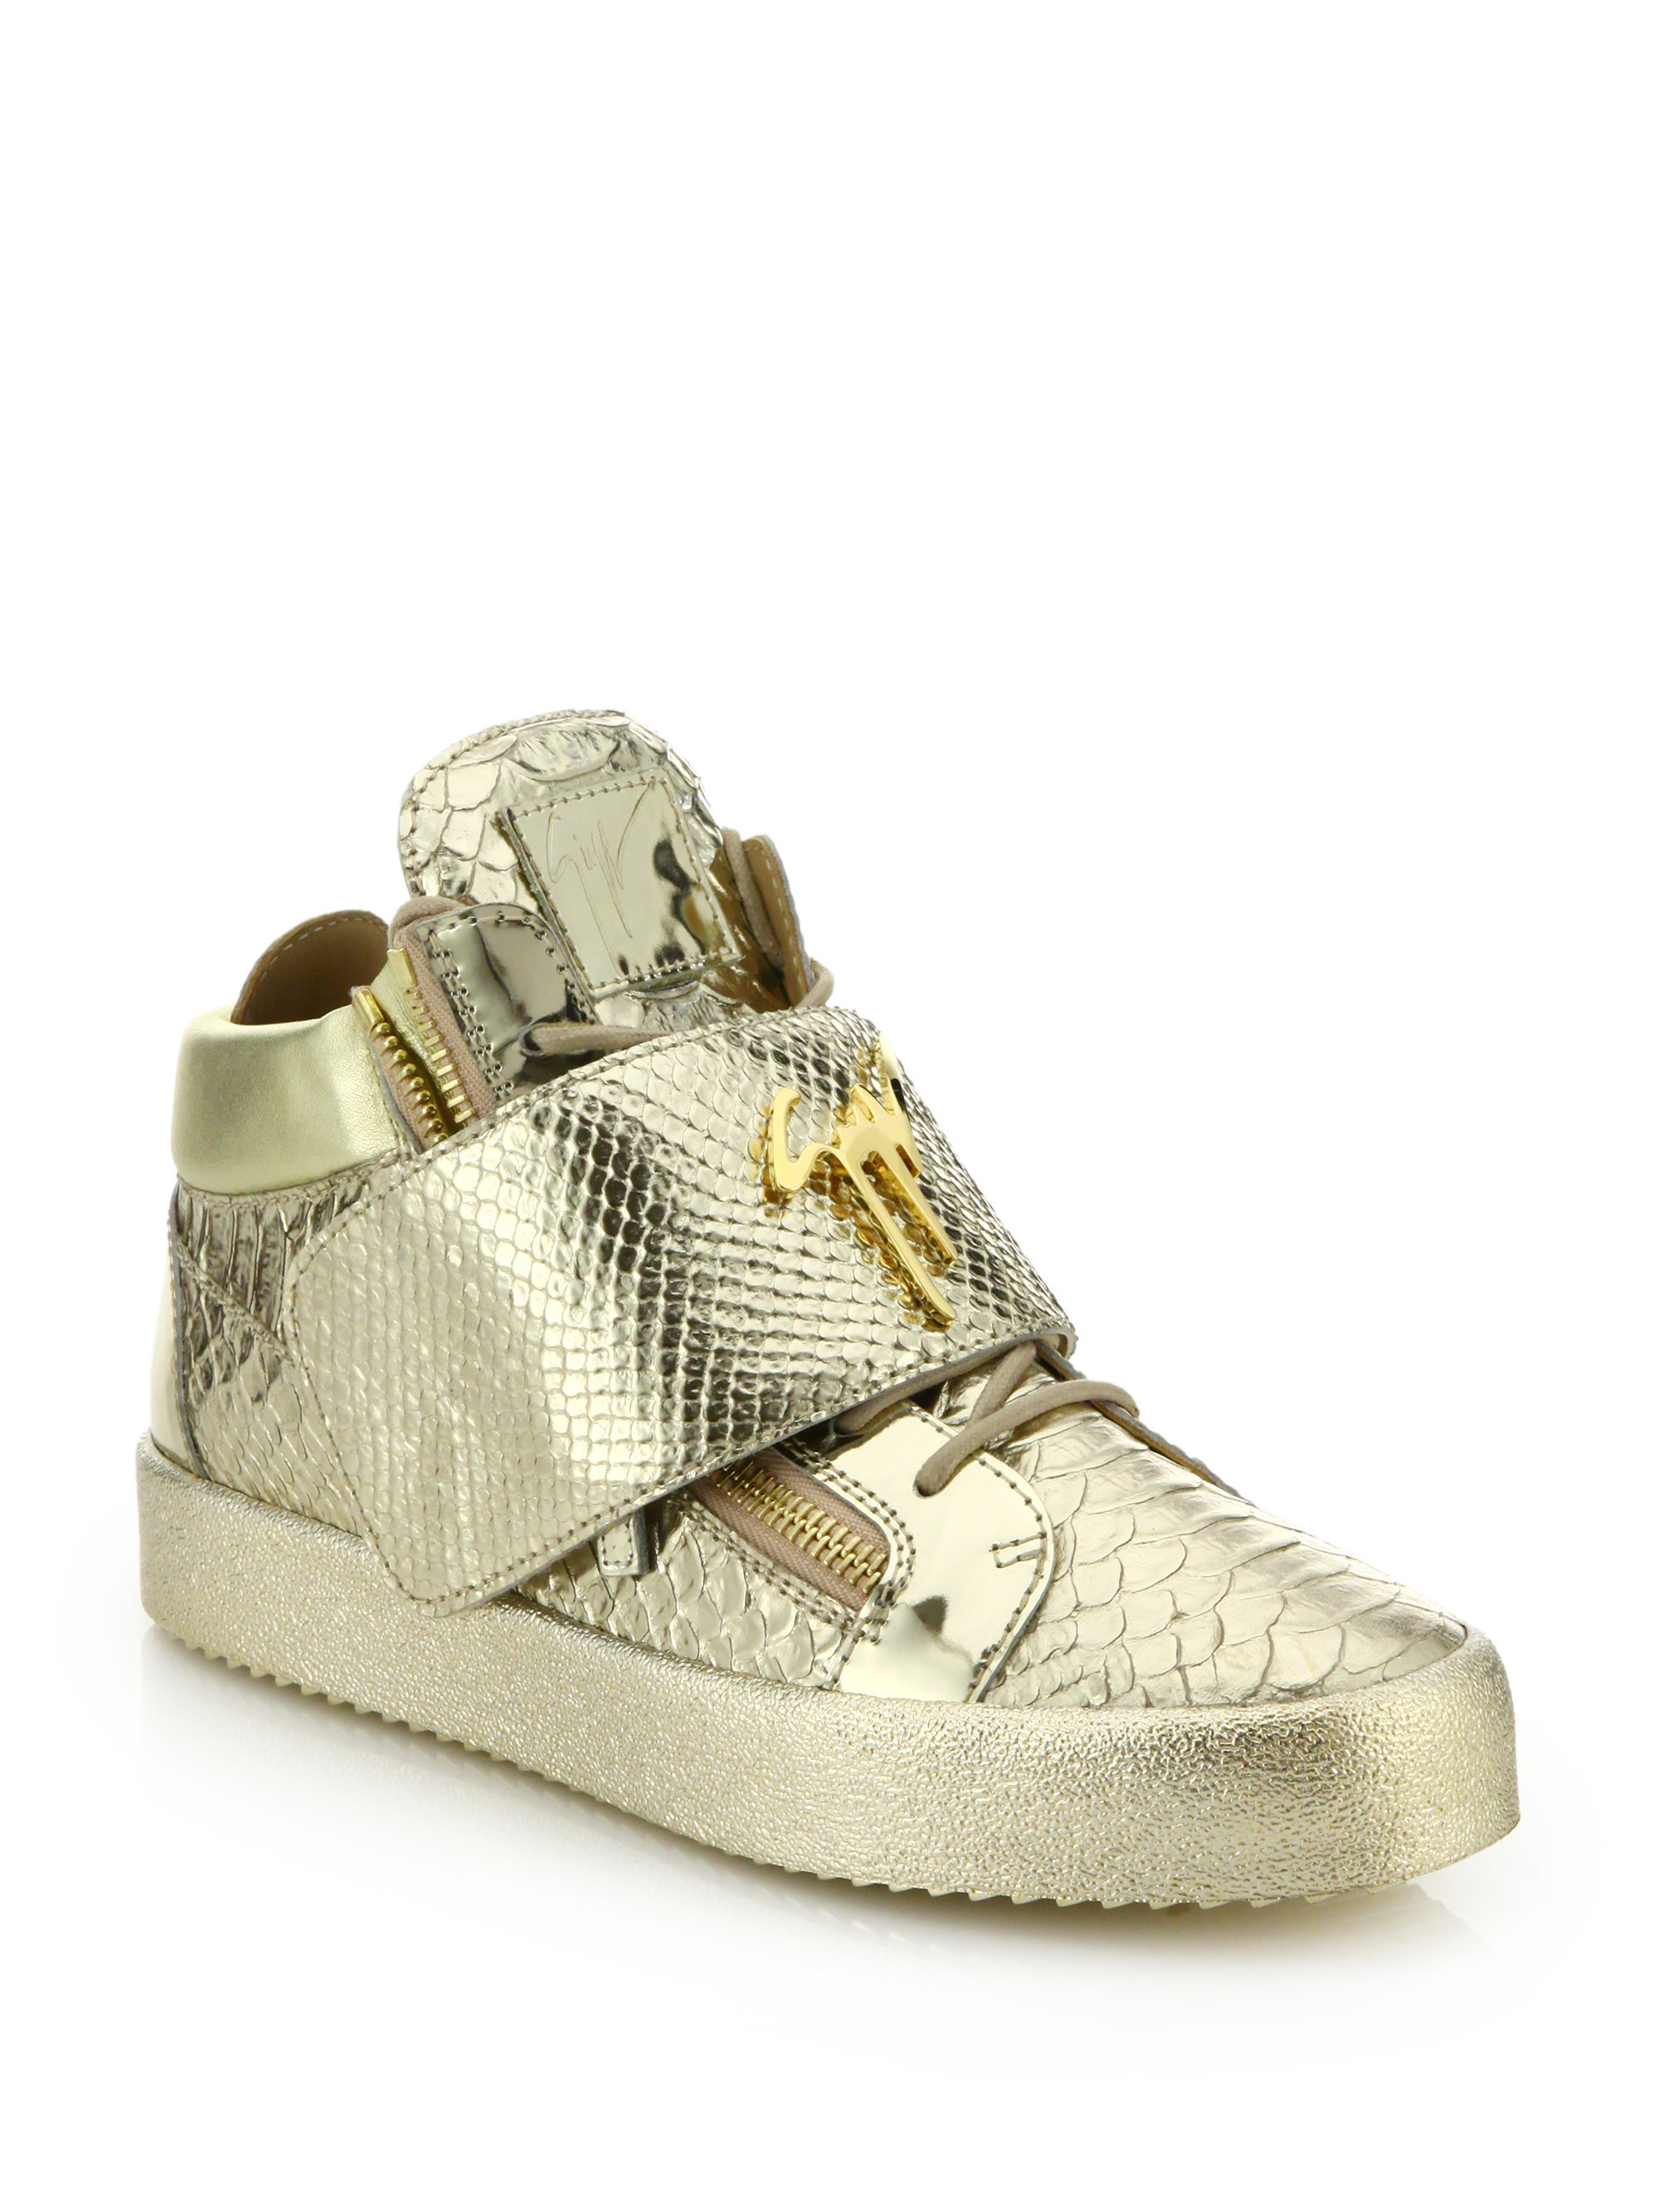 Lyst - Giuseppe Zanotti Snake Print Grip-tape Low-top Sneakers in ... 0d8b6e51d